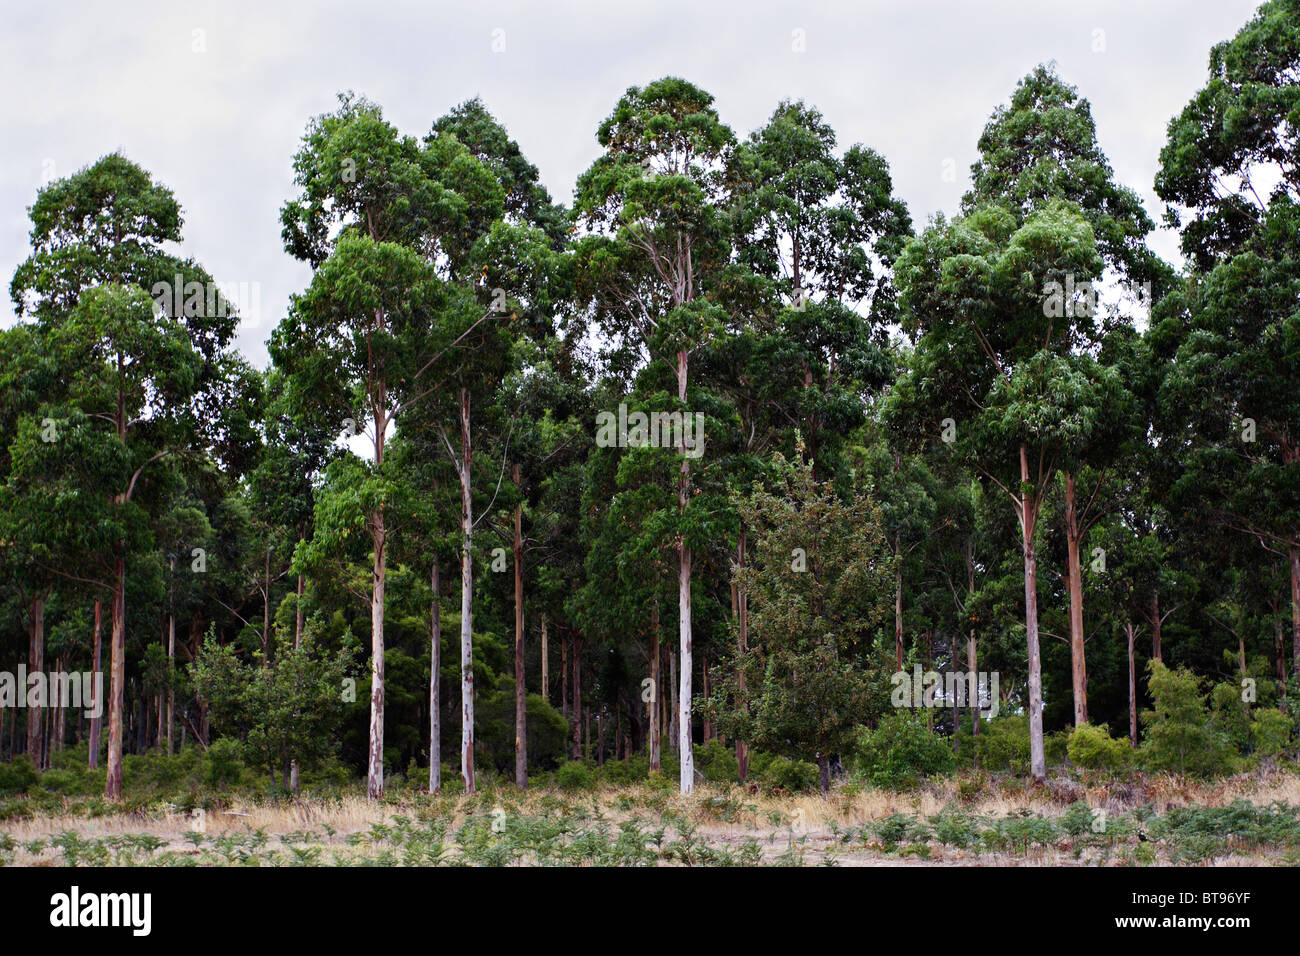 Trees planted for electric and telephone poles in Margaret River, Western Australia. - Stock Image